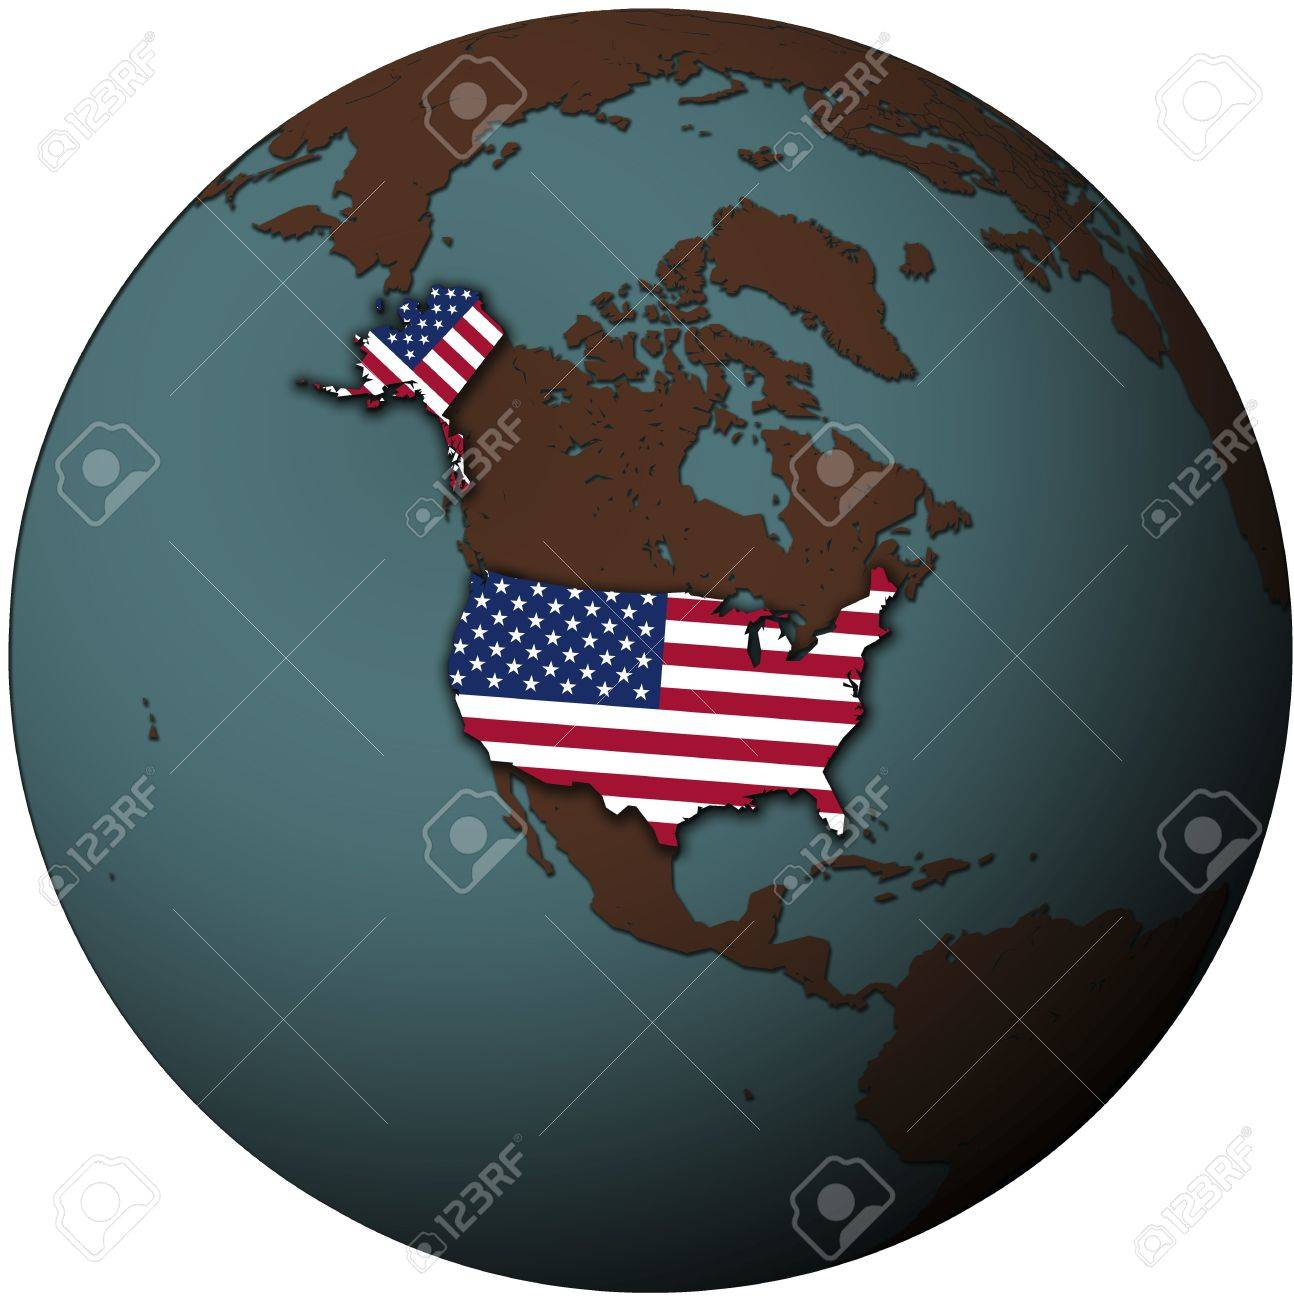 Usa Flag On Map Of Earth Globe Stock Photo Picture And Royalty - Globe of usa